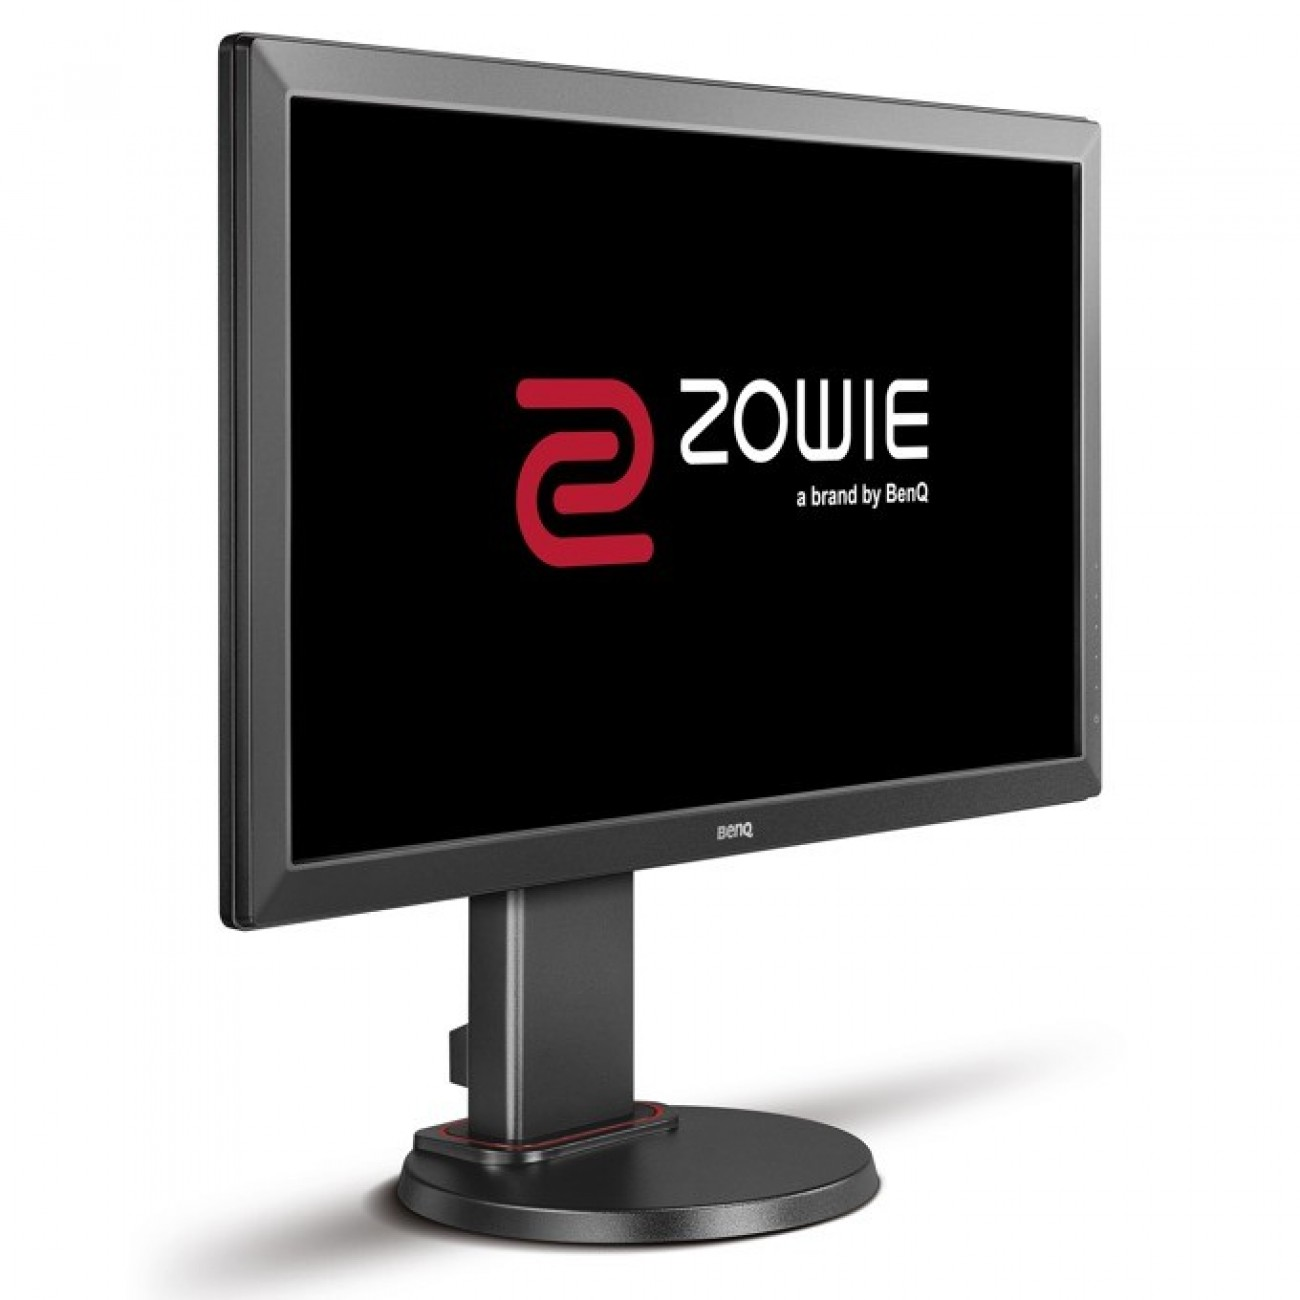 Монитор BenQ ZOWIE RL2460 (9H.LF3LB.QBE), 24 (60.96 cm) TN панел, Full HD, 1ms, 12 000 0000:1, 250 cd/2, HDMI, DVI, D-sub в Монитори -  | Alleop